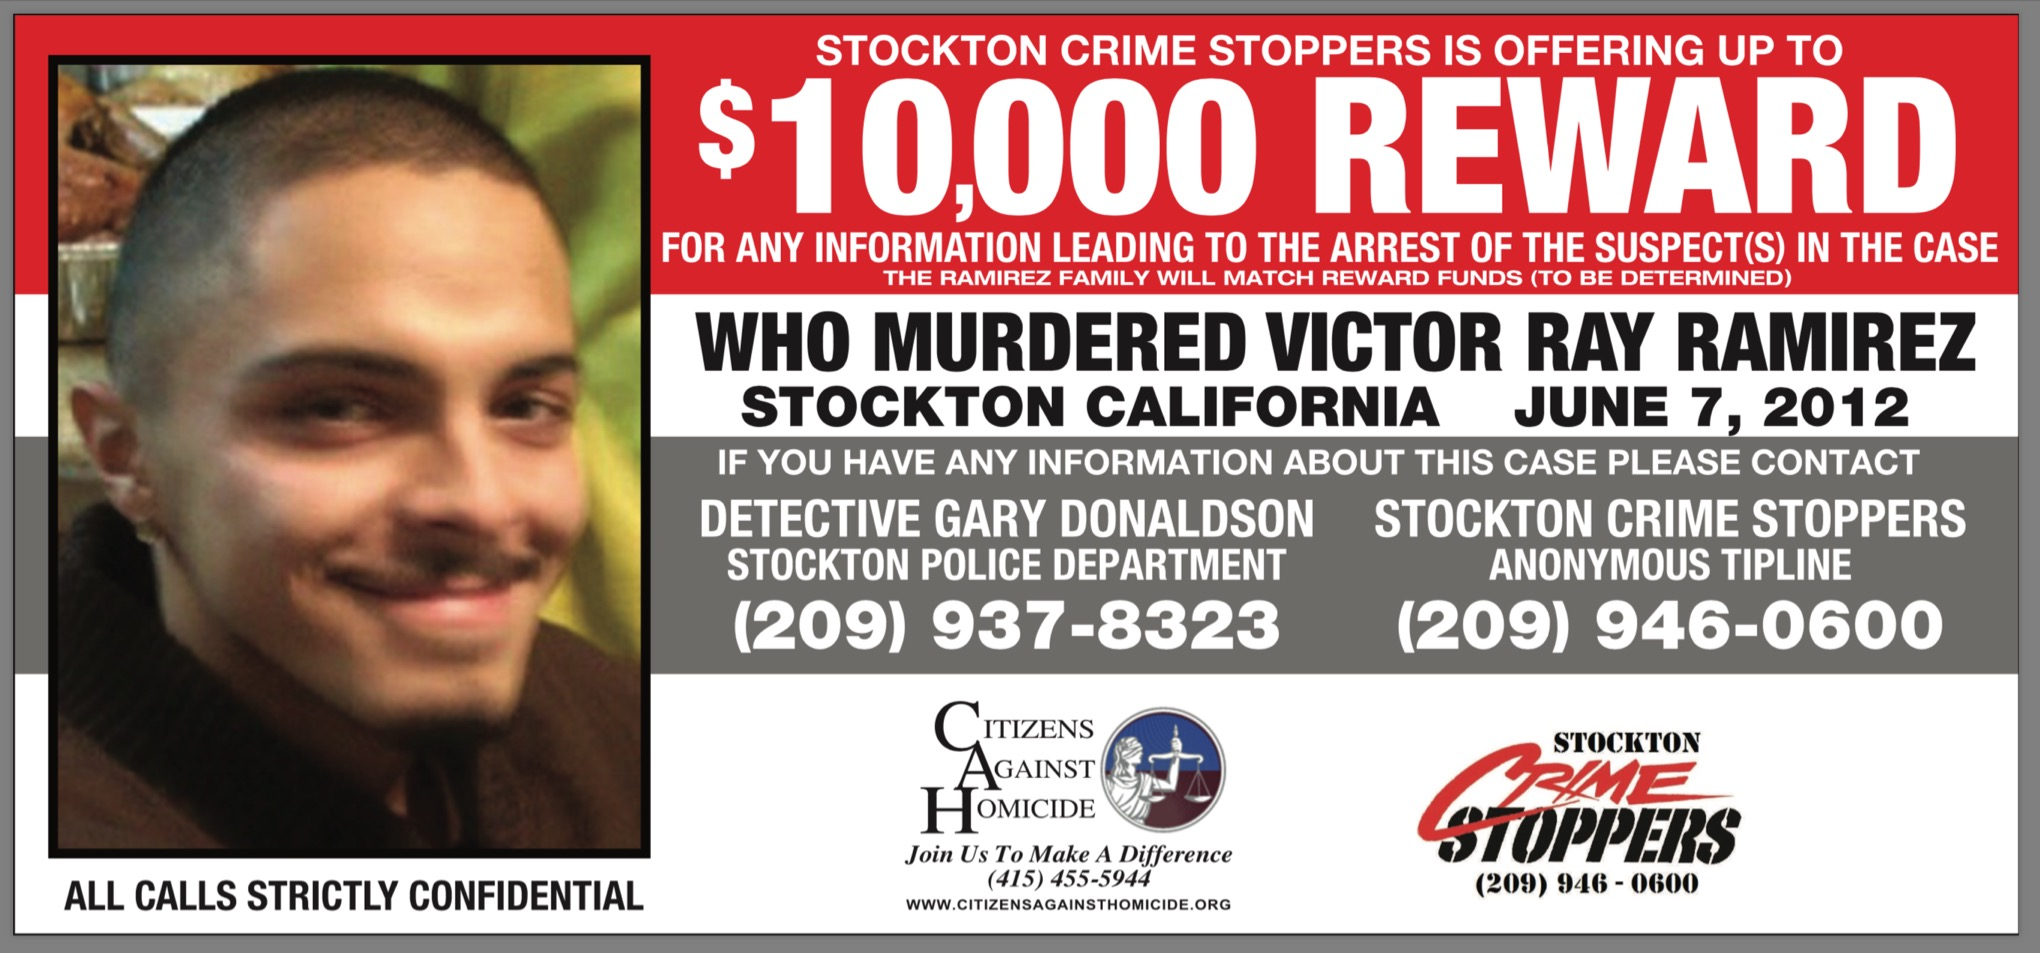 Up to $10,000 Reward for information leading to an arrest and conviction for the murder of Victor Ray Ramirez